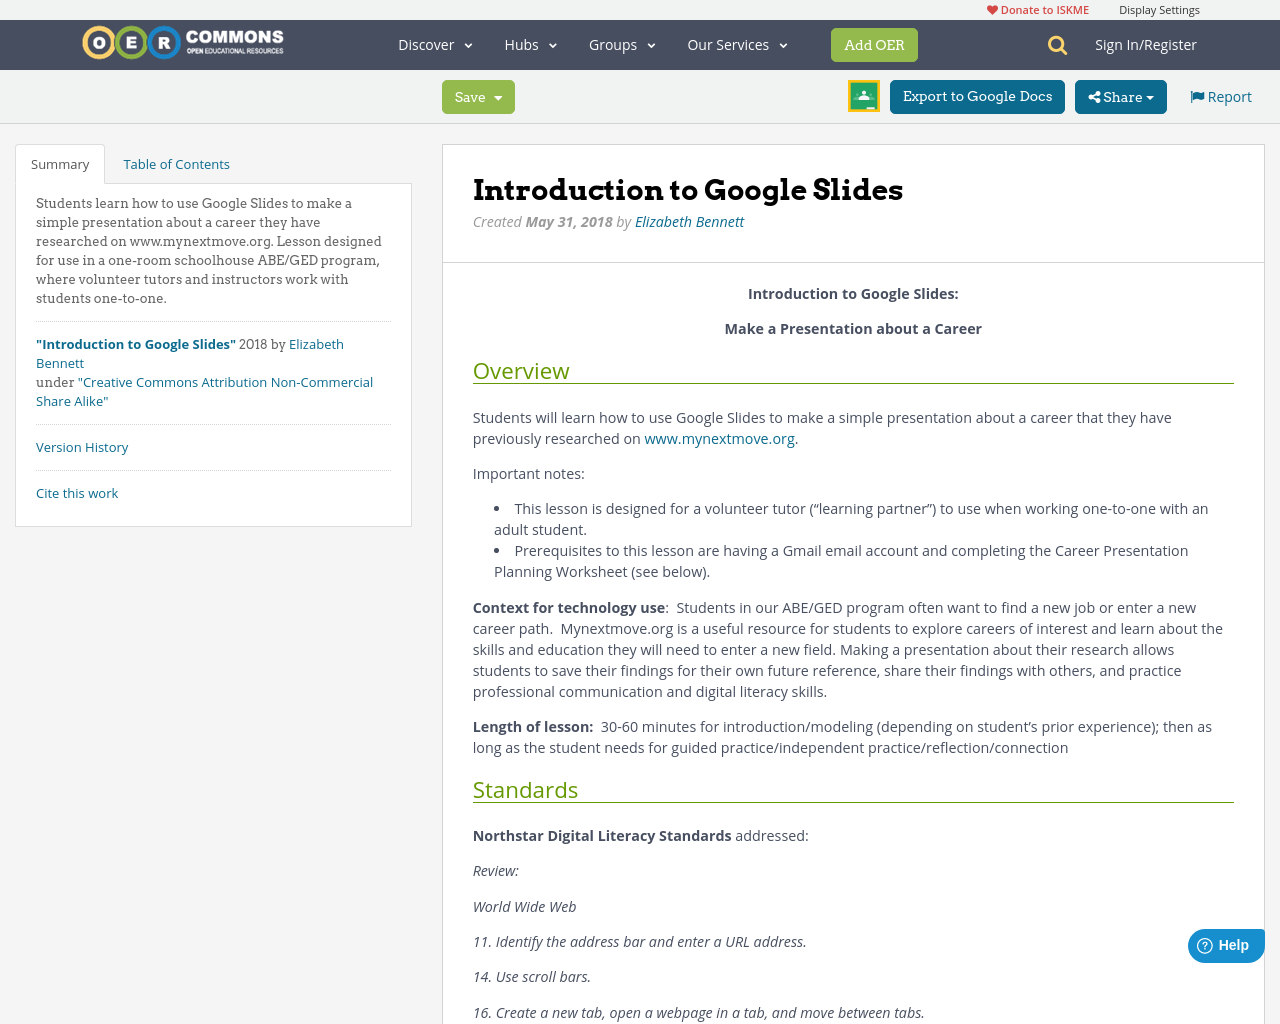 introduction to google slides oer commons